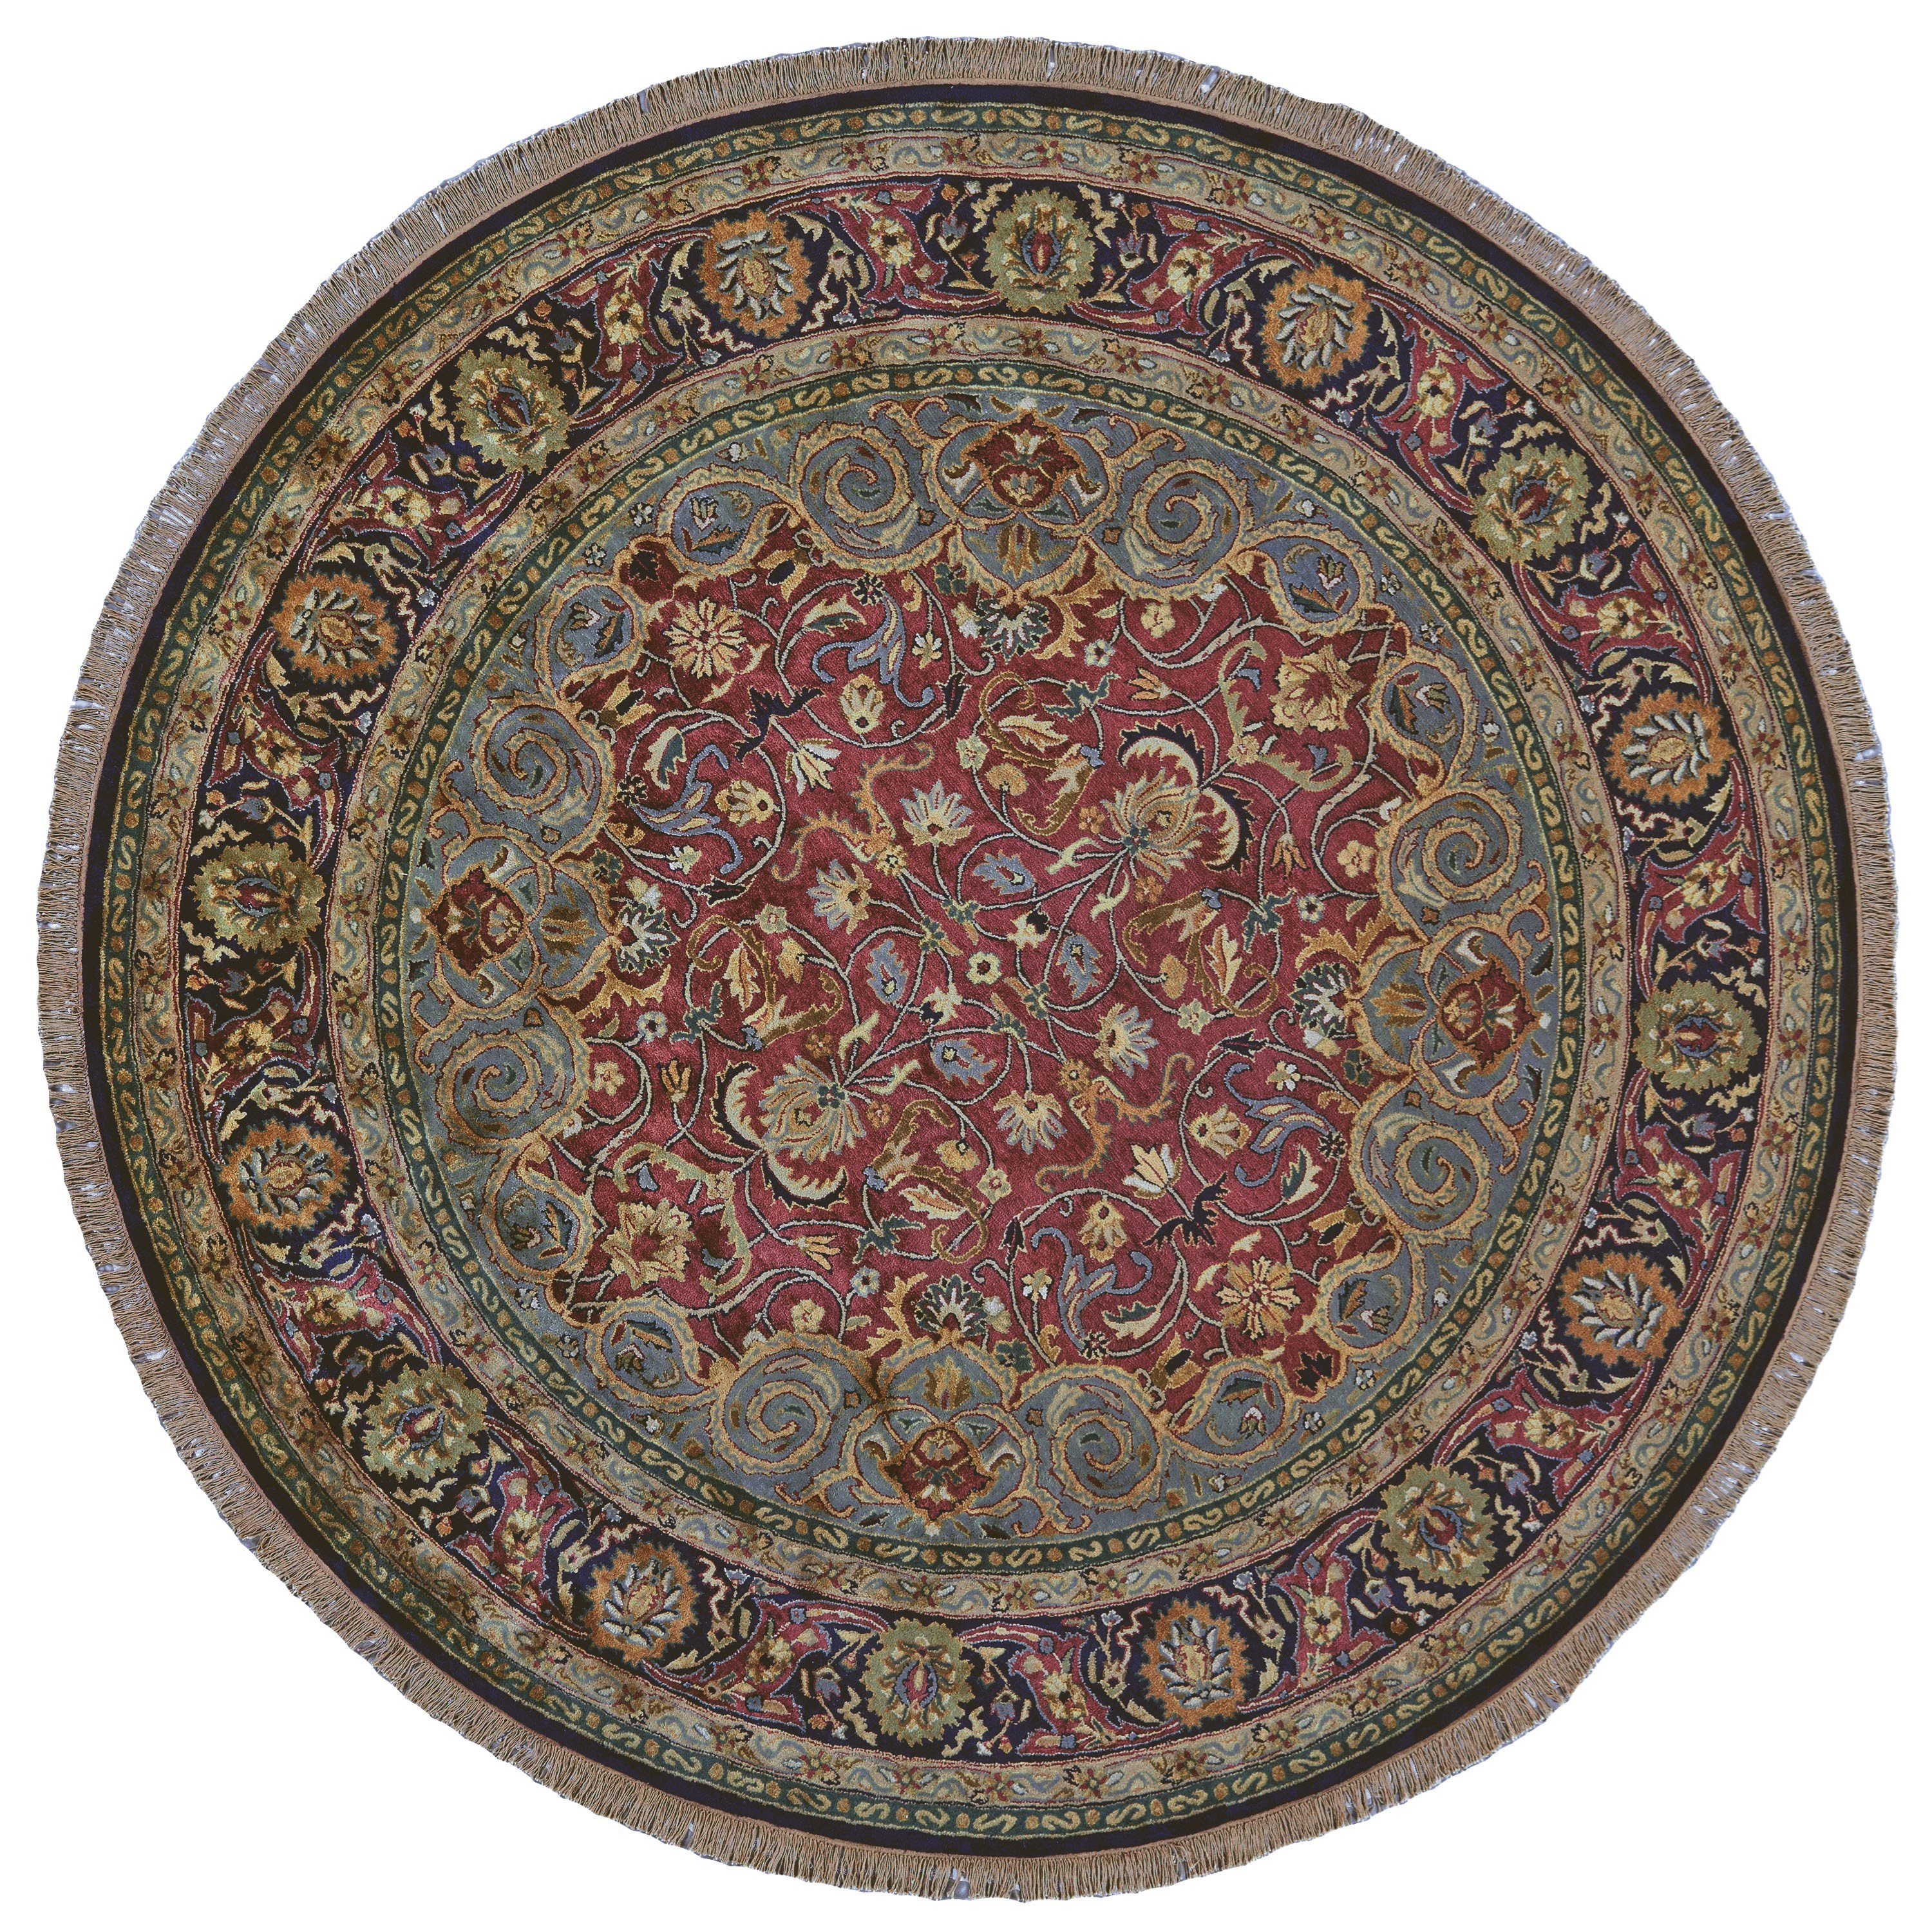 Amore Plum 8' x 8' Round Area Rug by Feizy Rugs at Sprintz Furniture